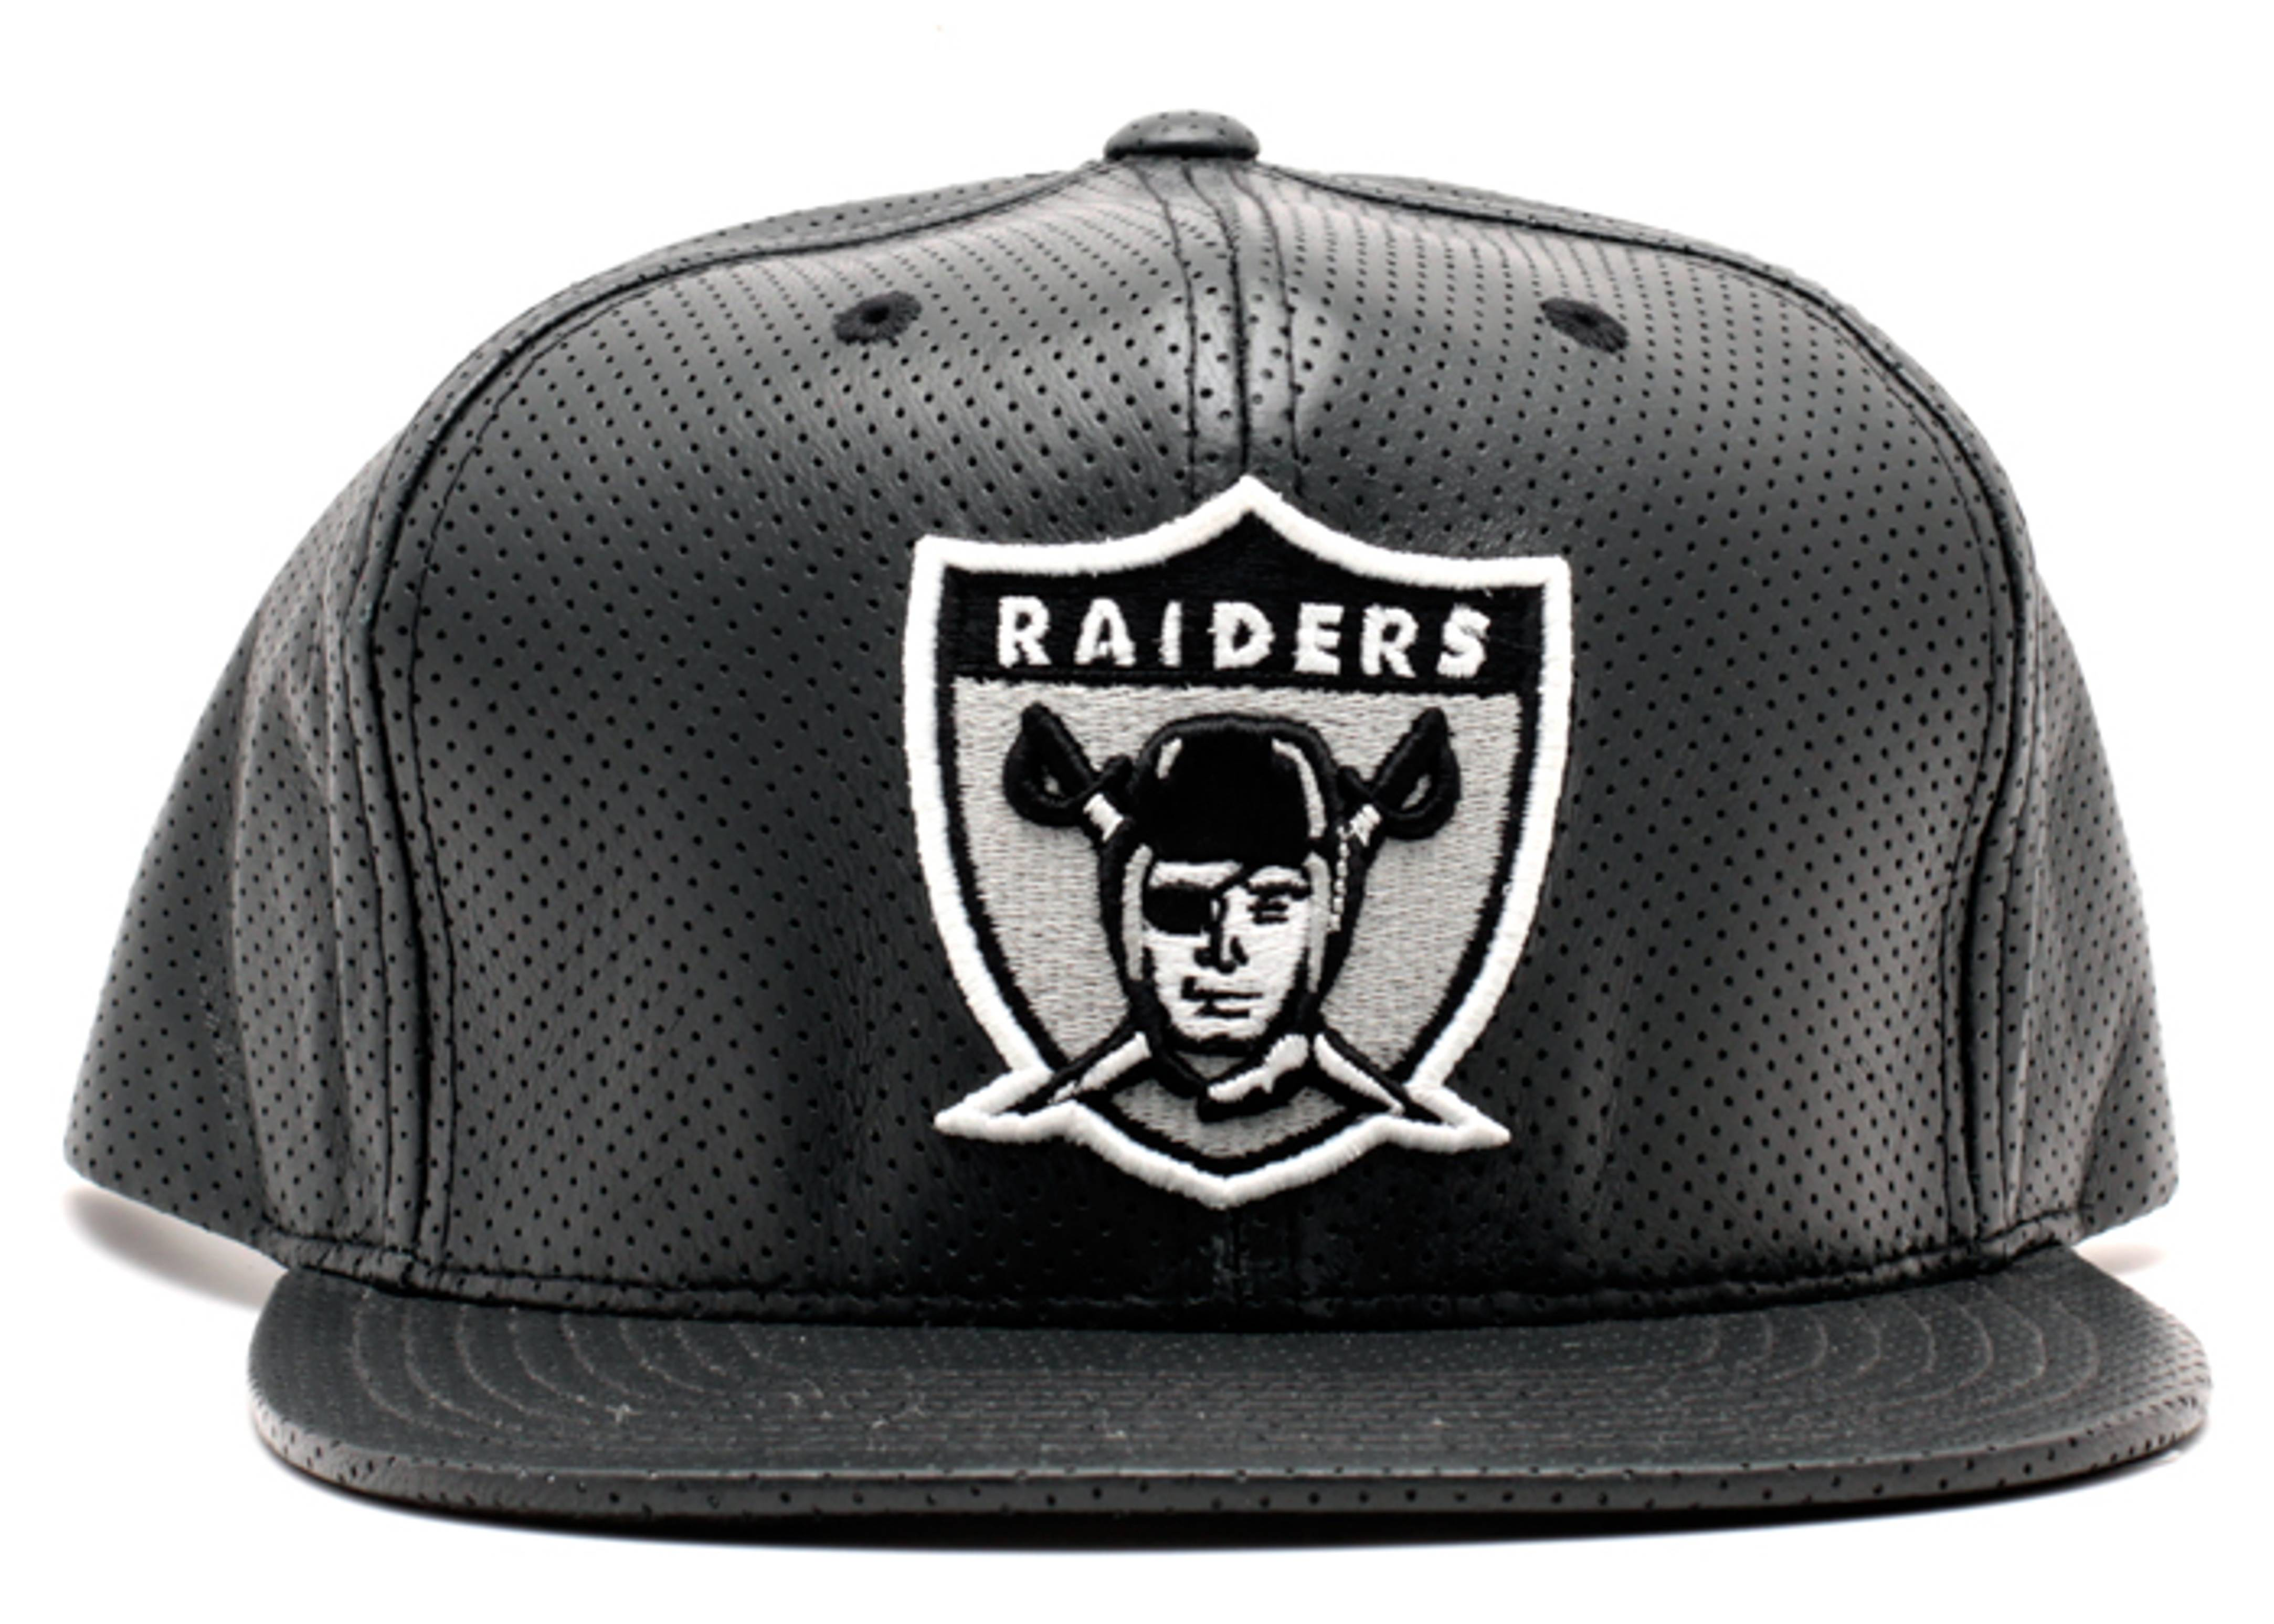 oakland raiders perforated leather snap-back